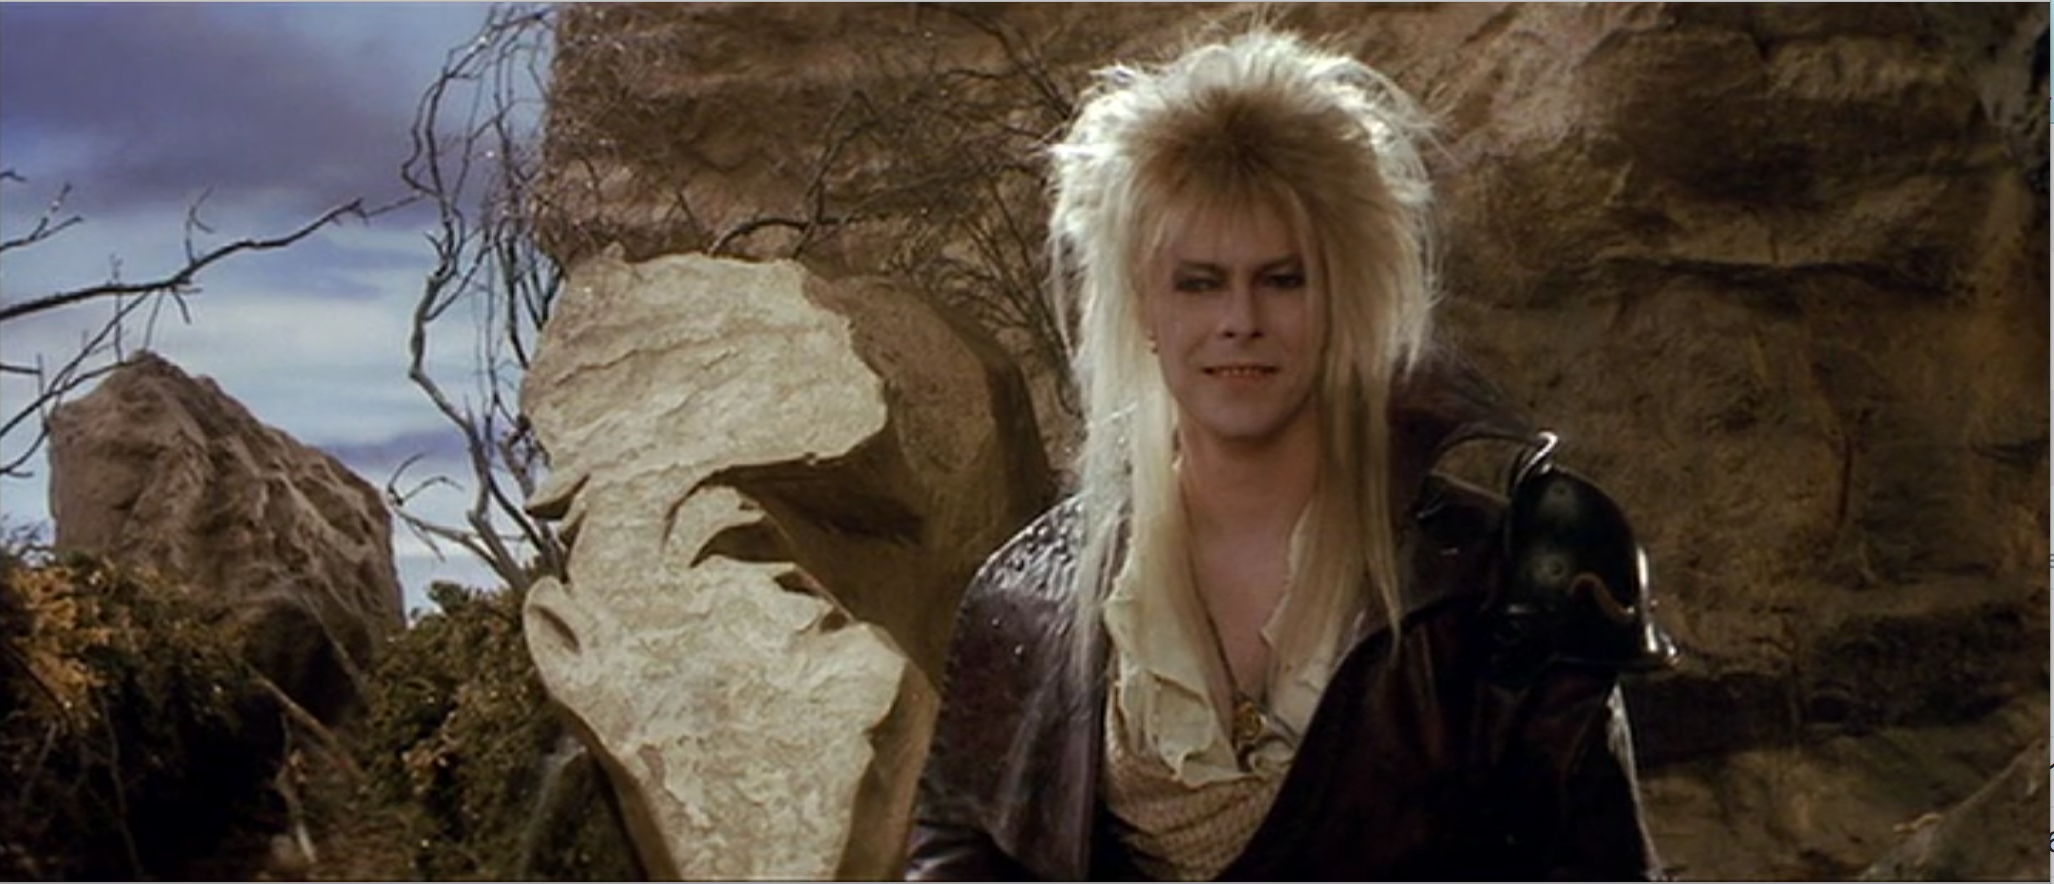 Goblin King in Labyrinth: An audio-visual close reading of ... Labyrinth David Bowie